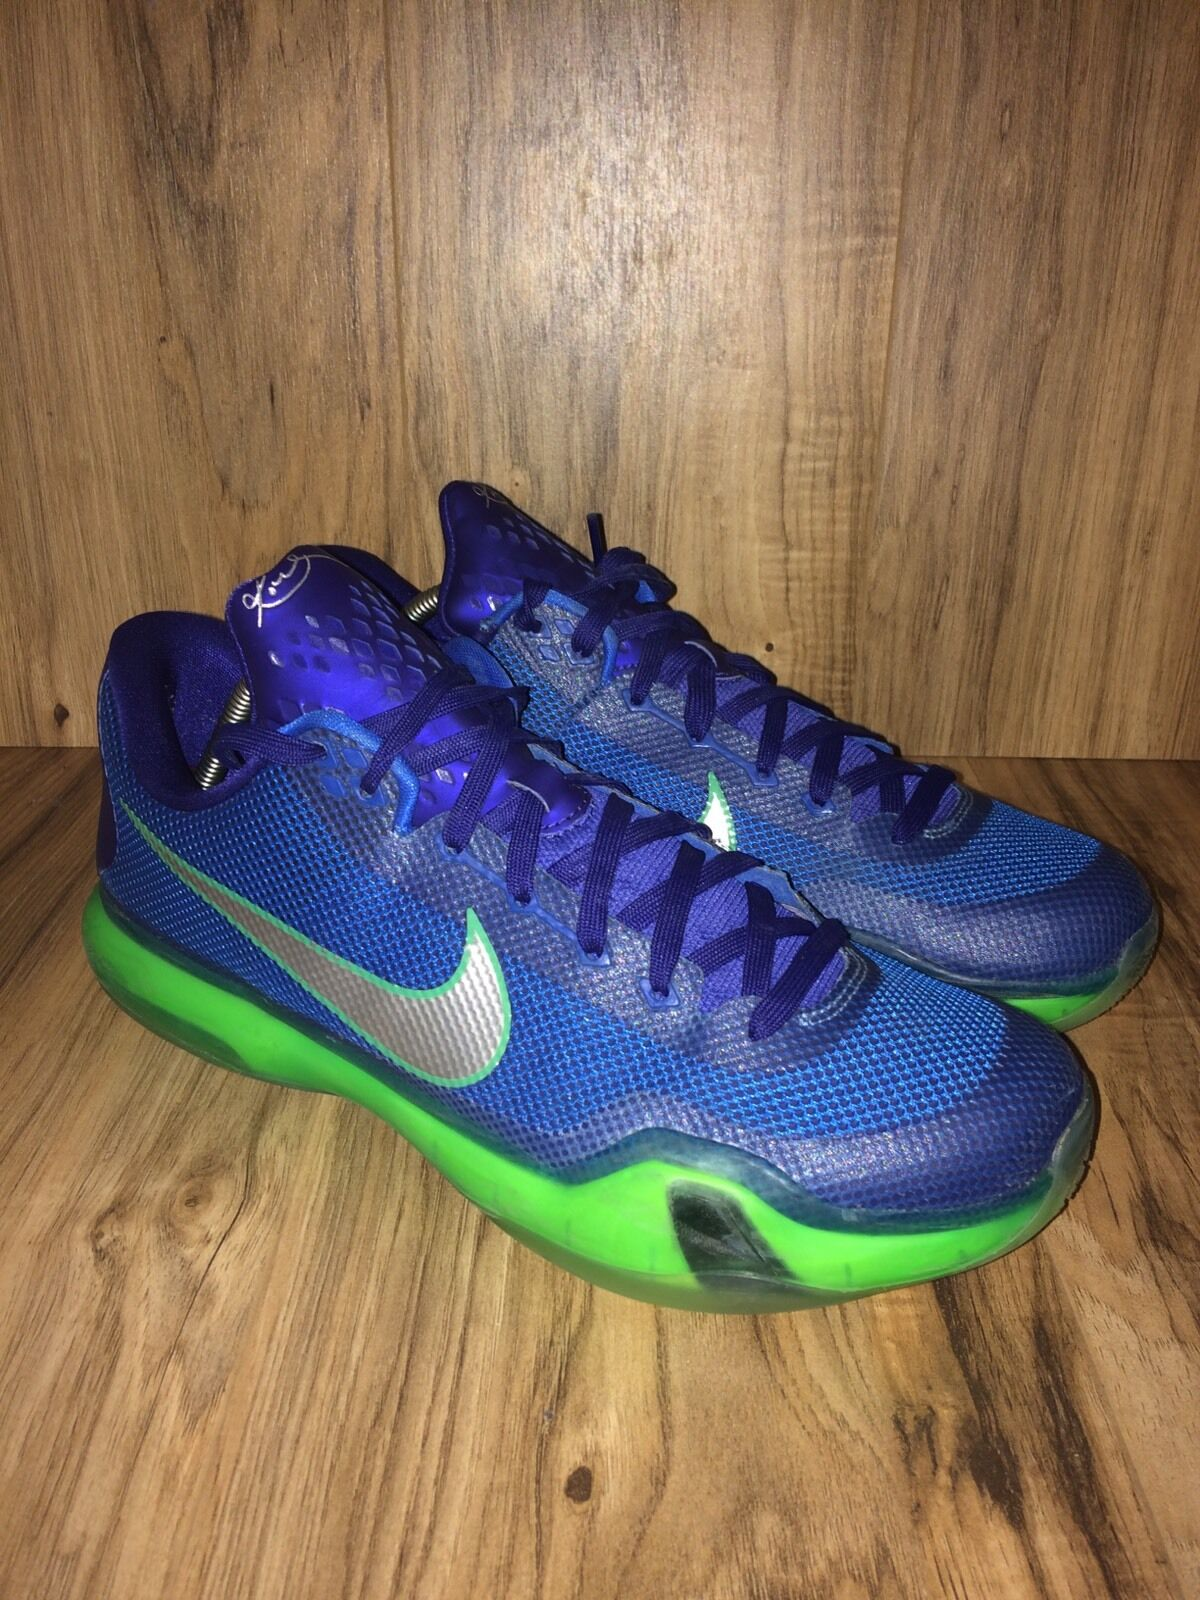 RARENike Kobe 10 X Low Royal Emerald City 705317-402 Green Royal Low Blue Sz 11.5 584376